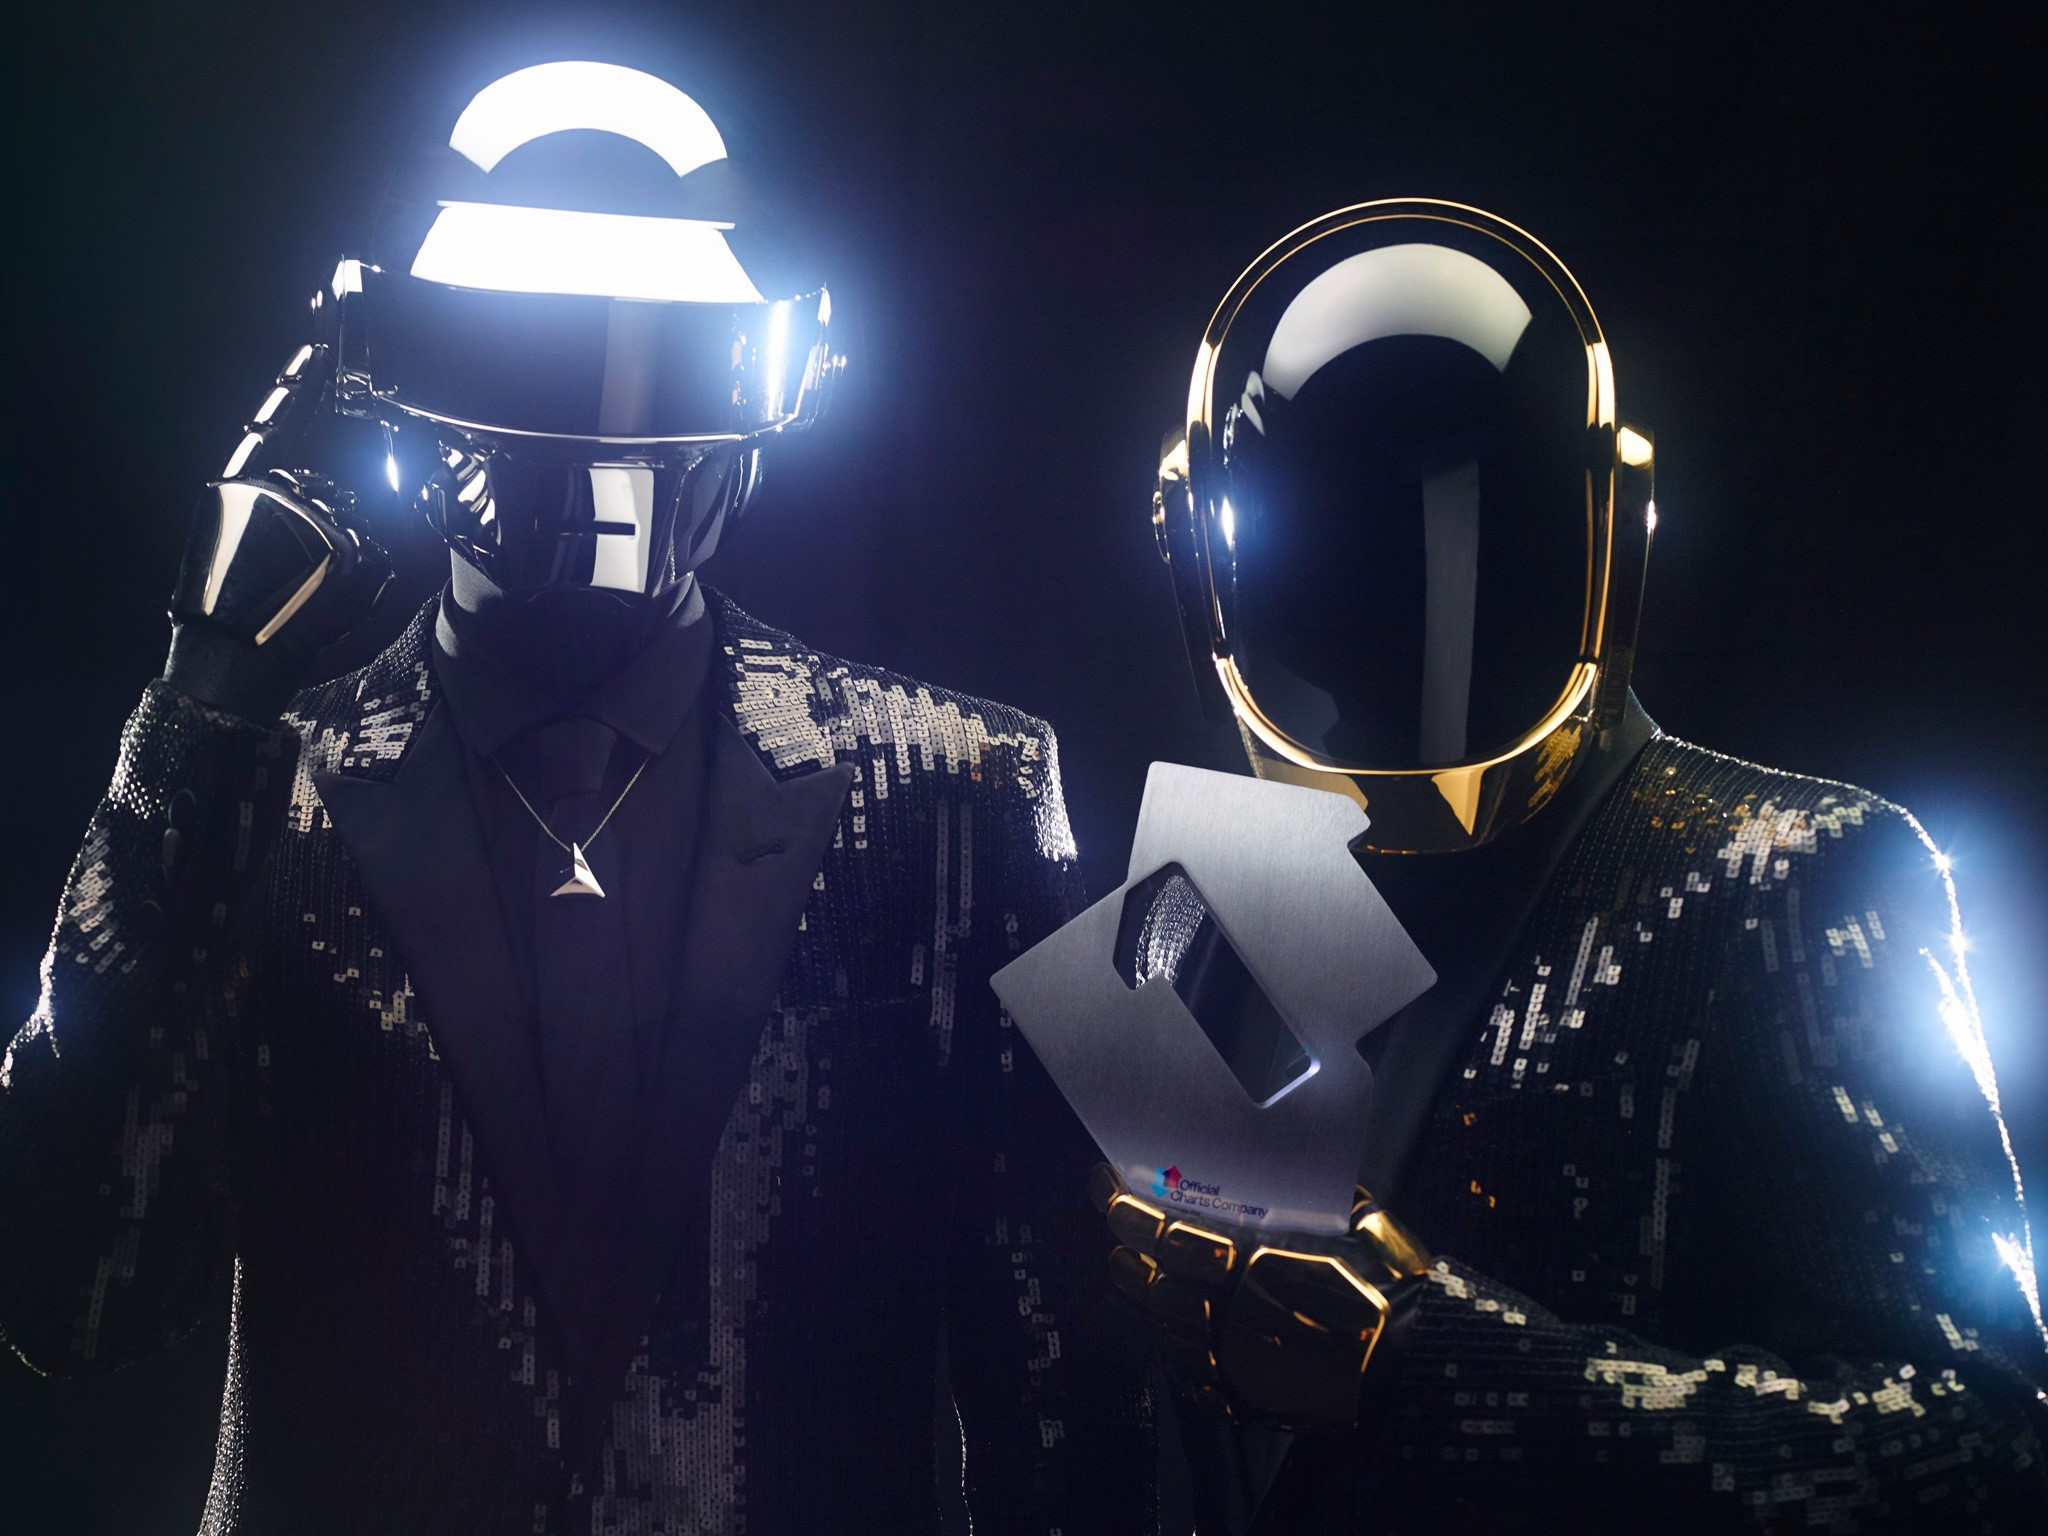 Wallpaper Daft Punk en Random Access Memories Images